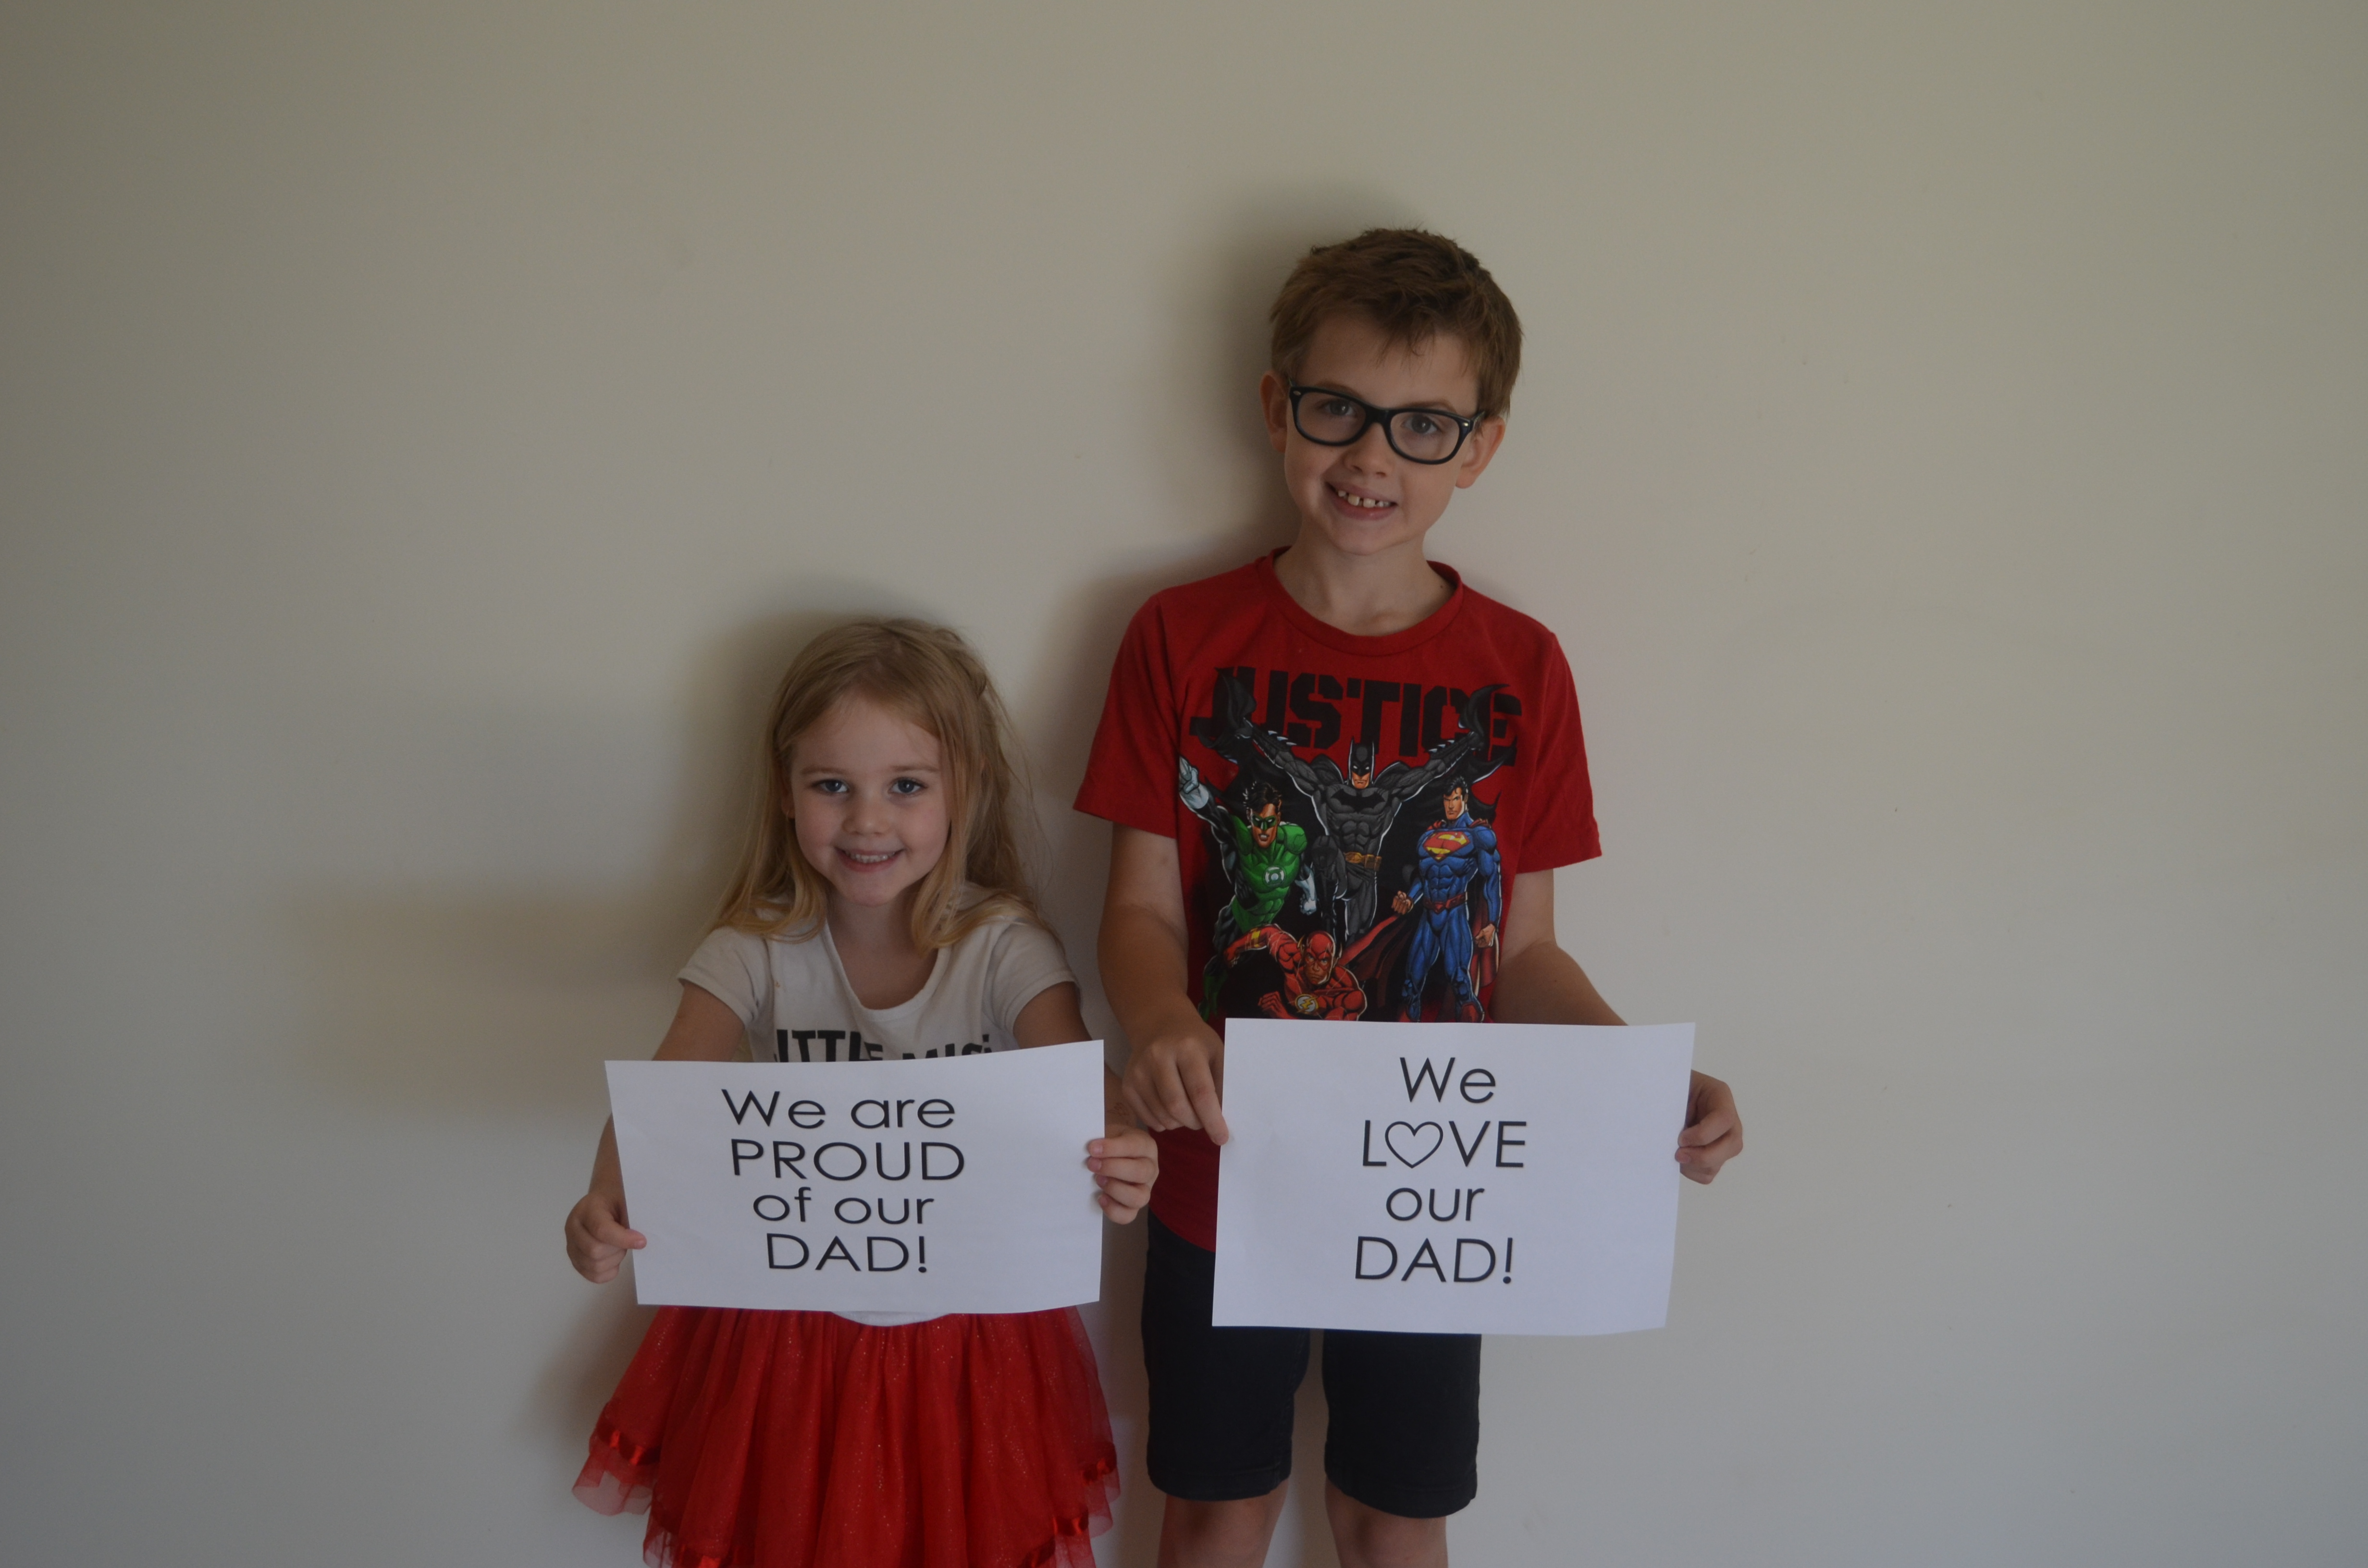 Michael and Olivia have a message for their Dad.